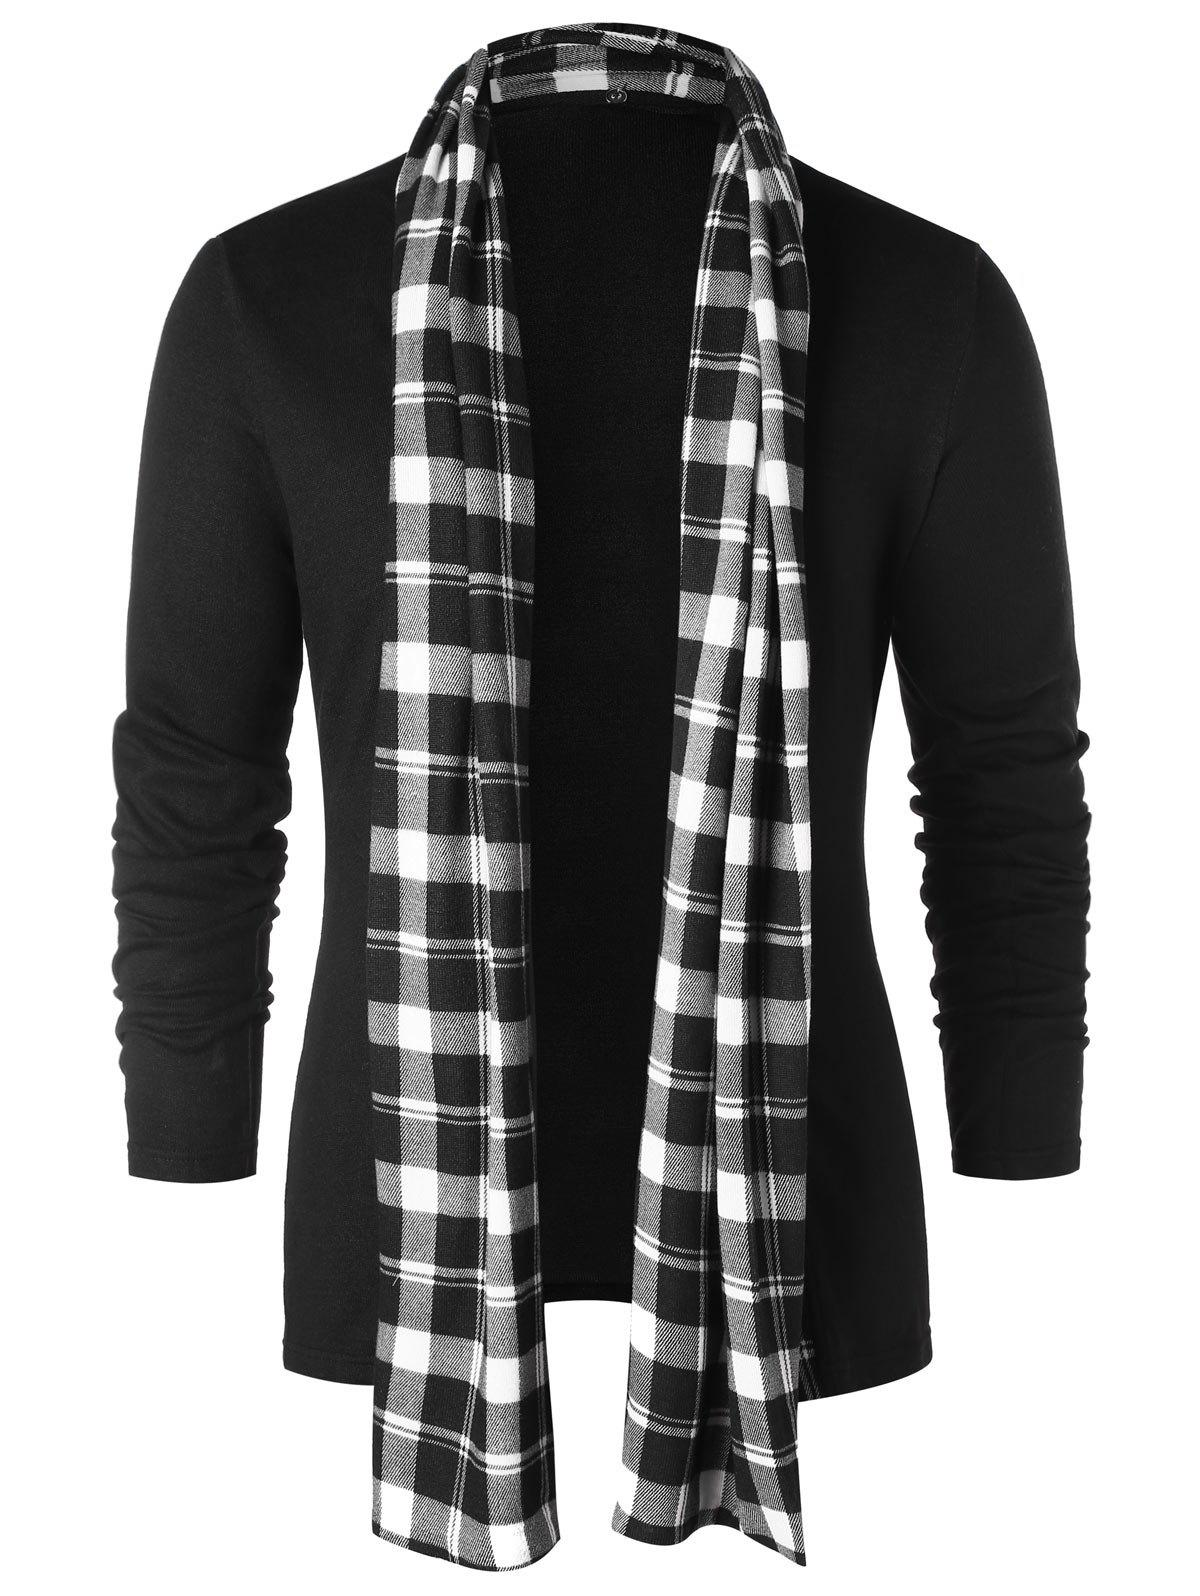 Checked Print Open Front Longline Cardigan - BLACK S